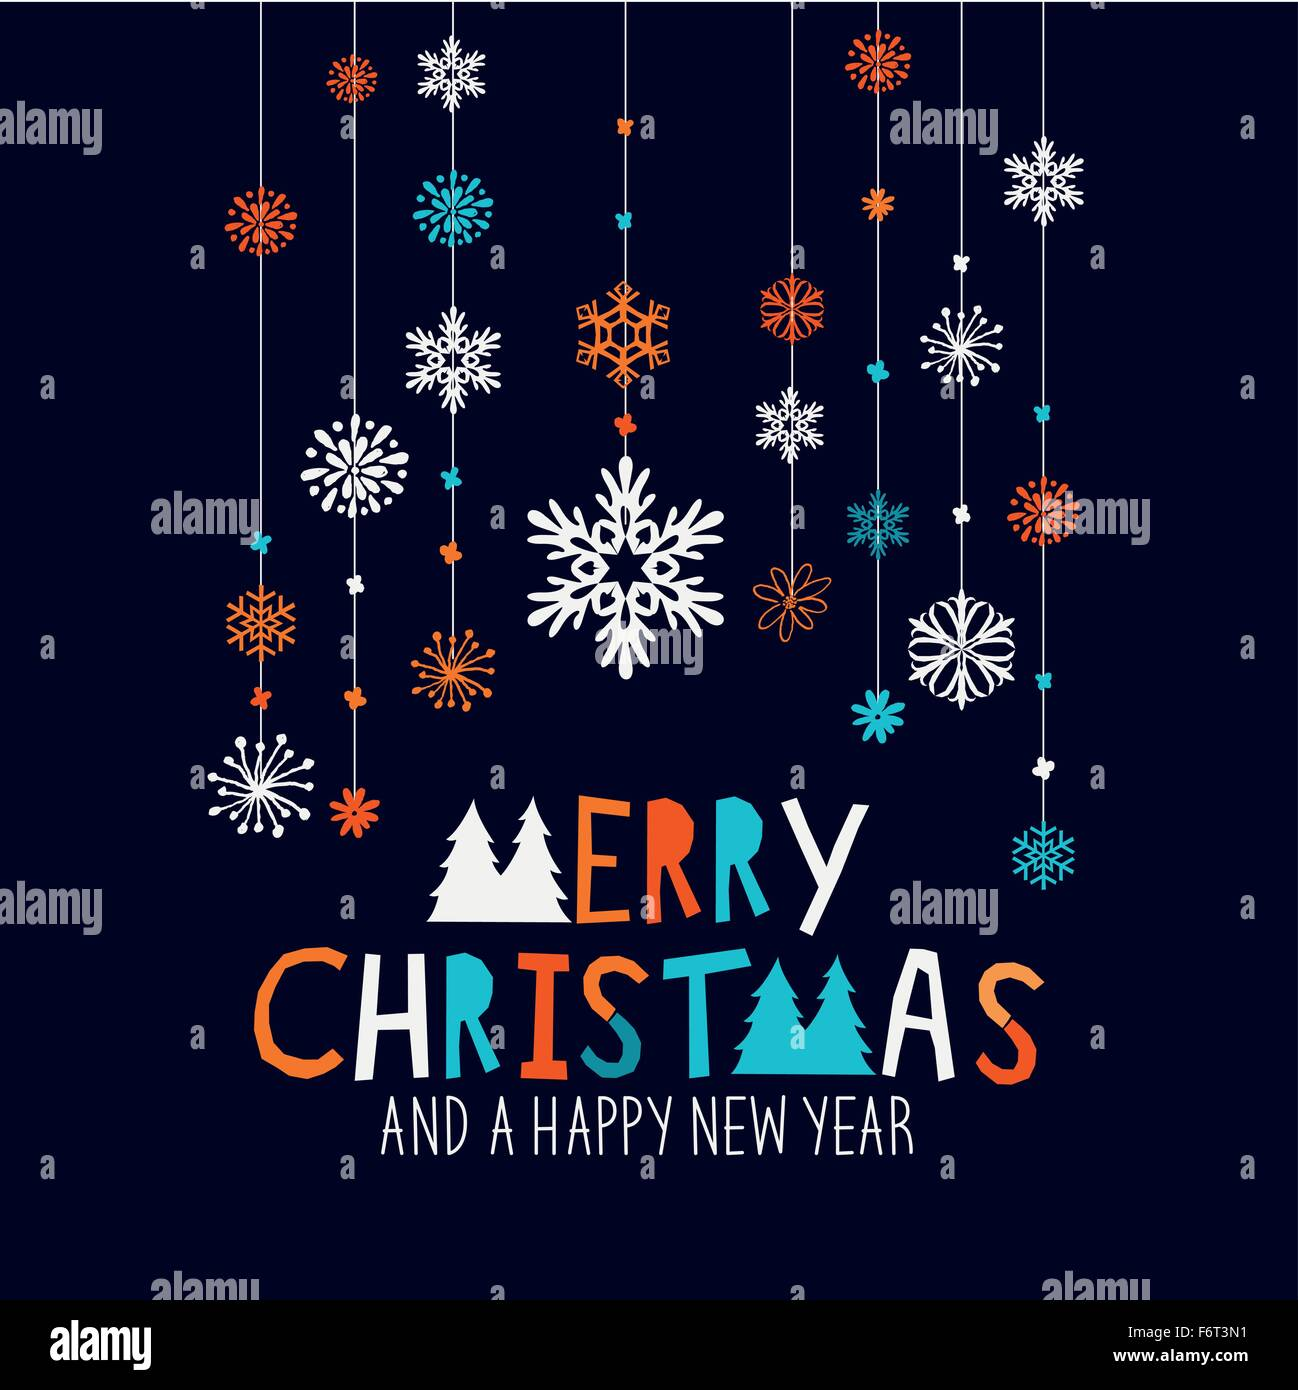 Merry Christmas Decorations. Hanging snowflake decorations and merry christmas sign. Vector illustration. - Stock Image